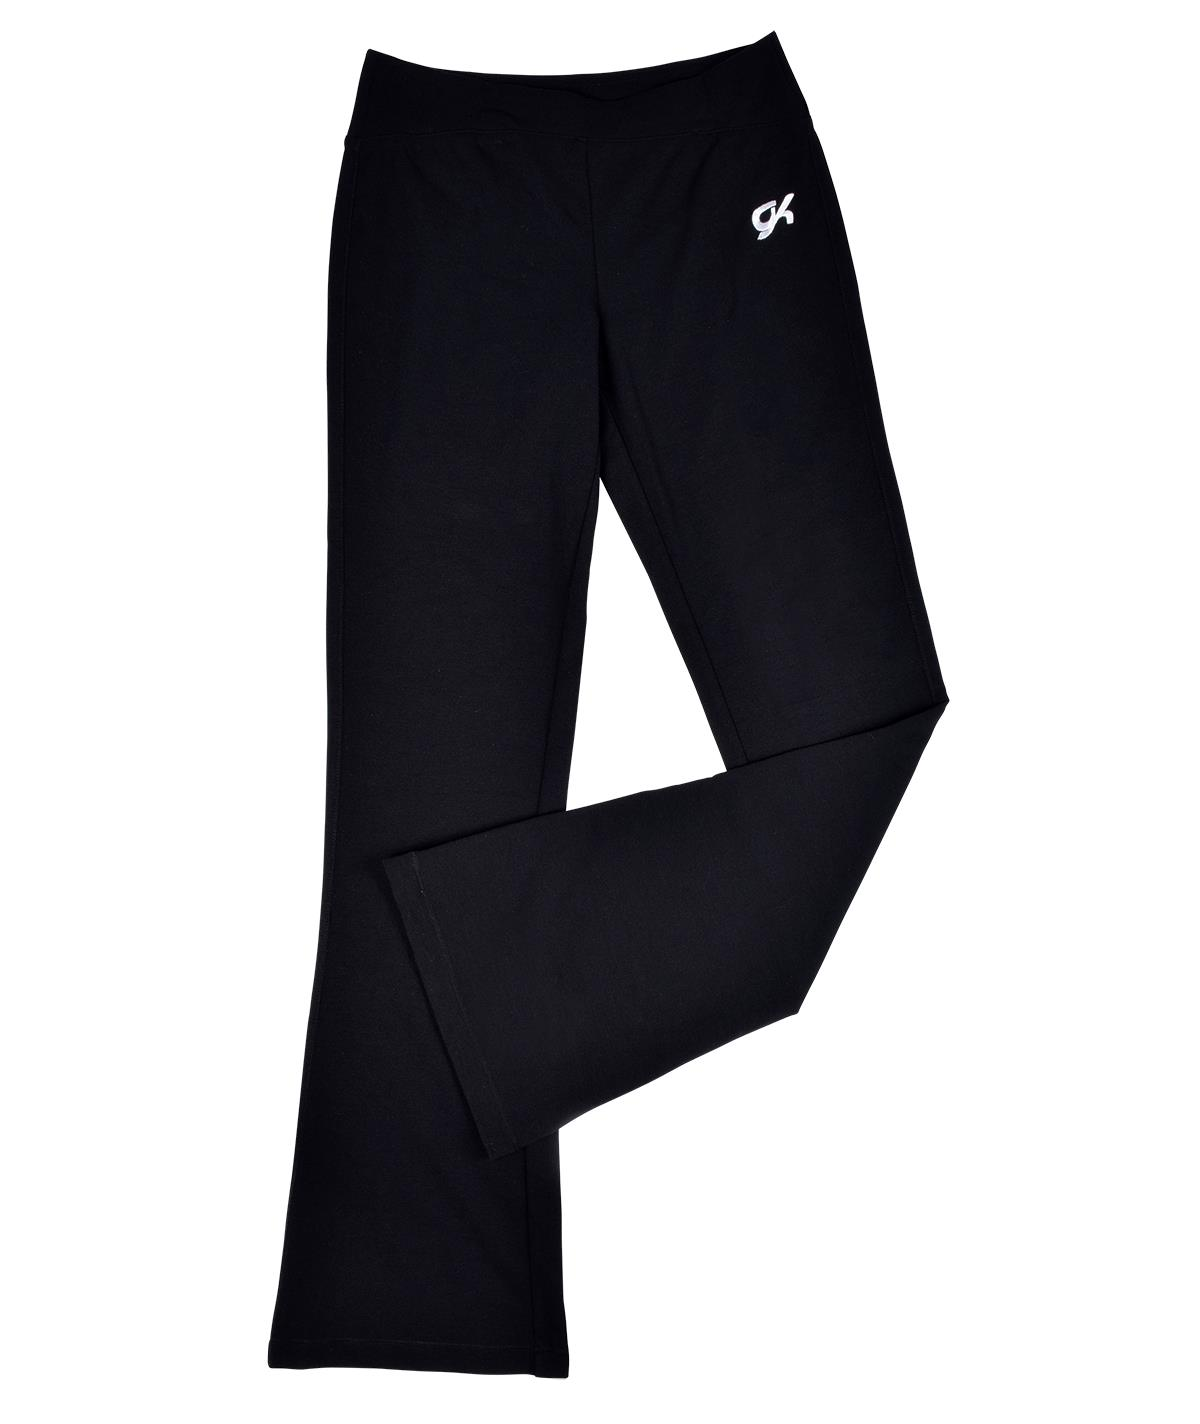 GK Balance Fitted Warmup Pant